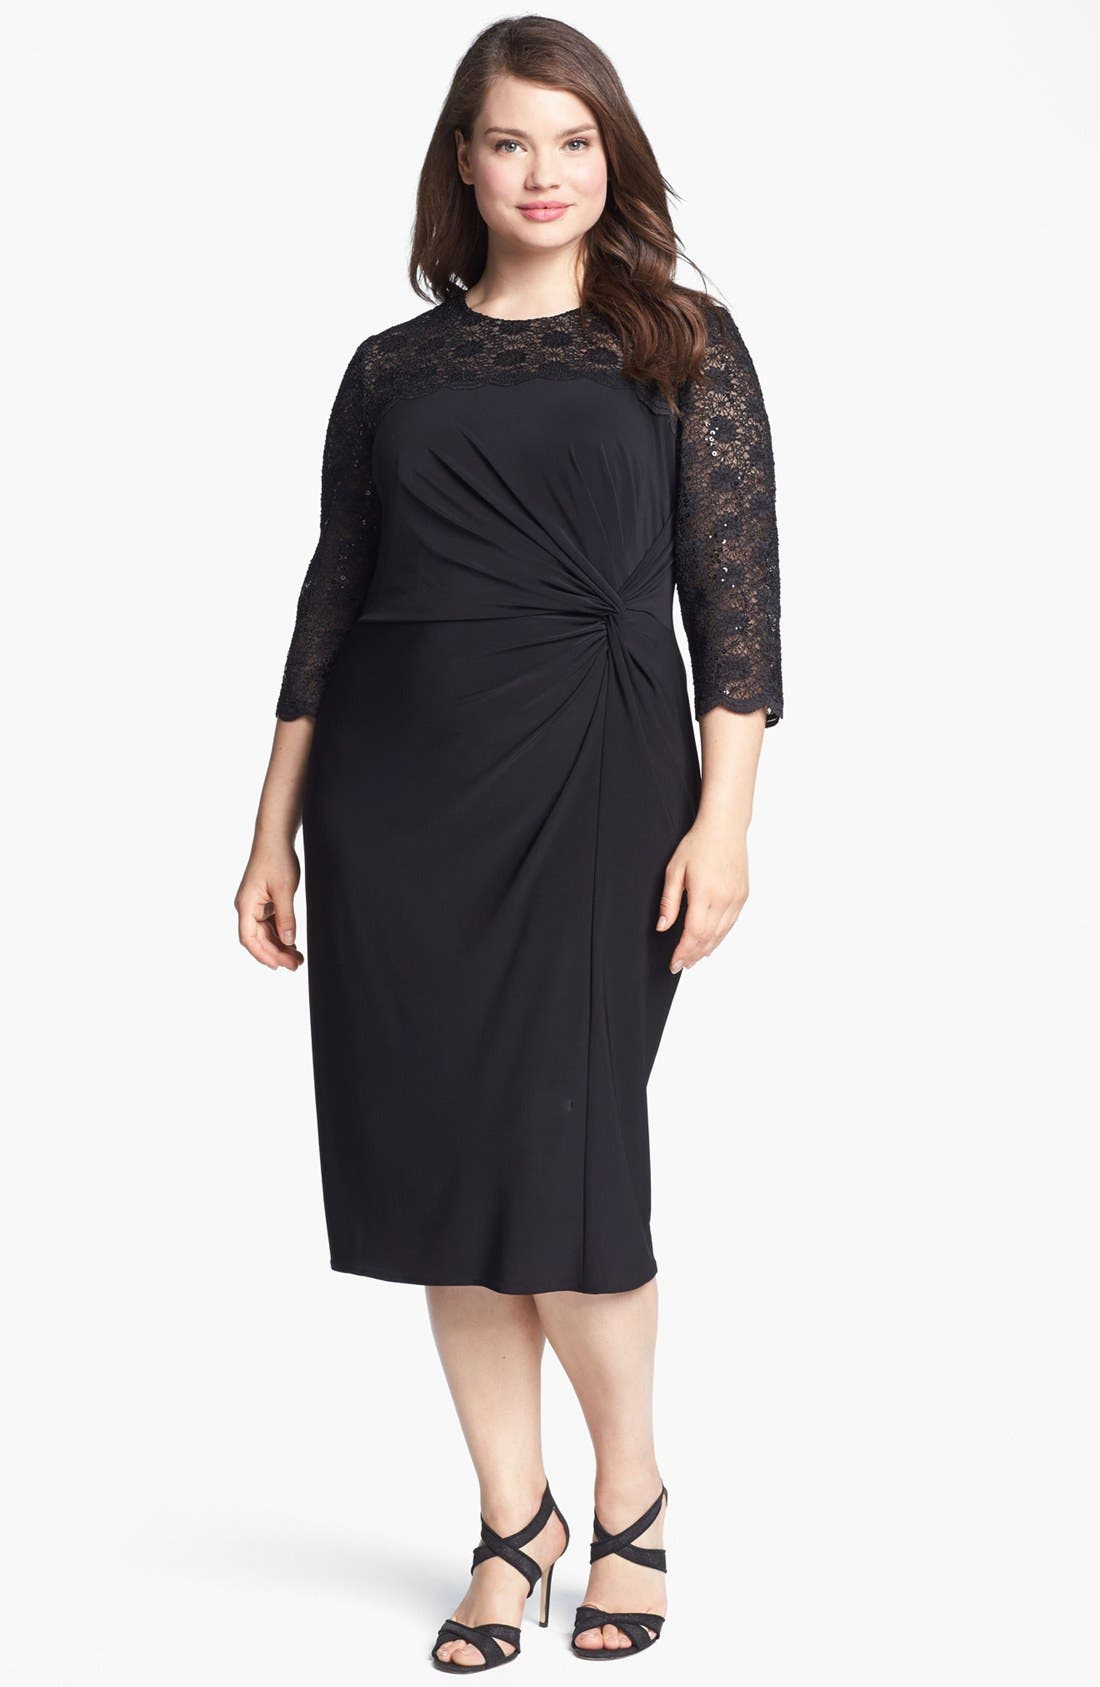 Alternate Image 1 Selected - Alex Evenings Embellished Lace & Jersey Dress (Plus Size)